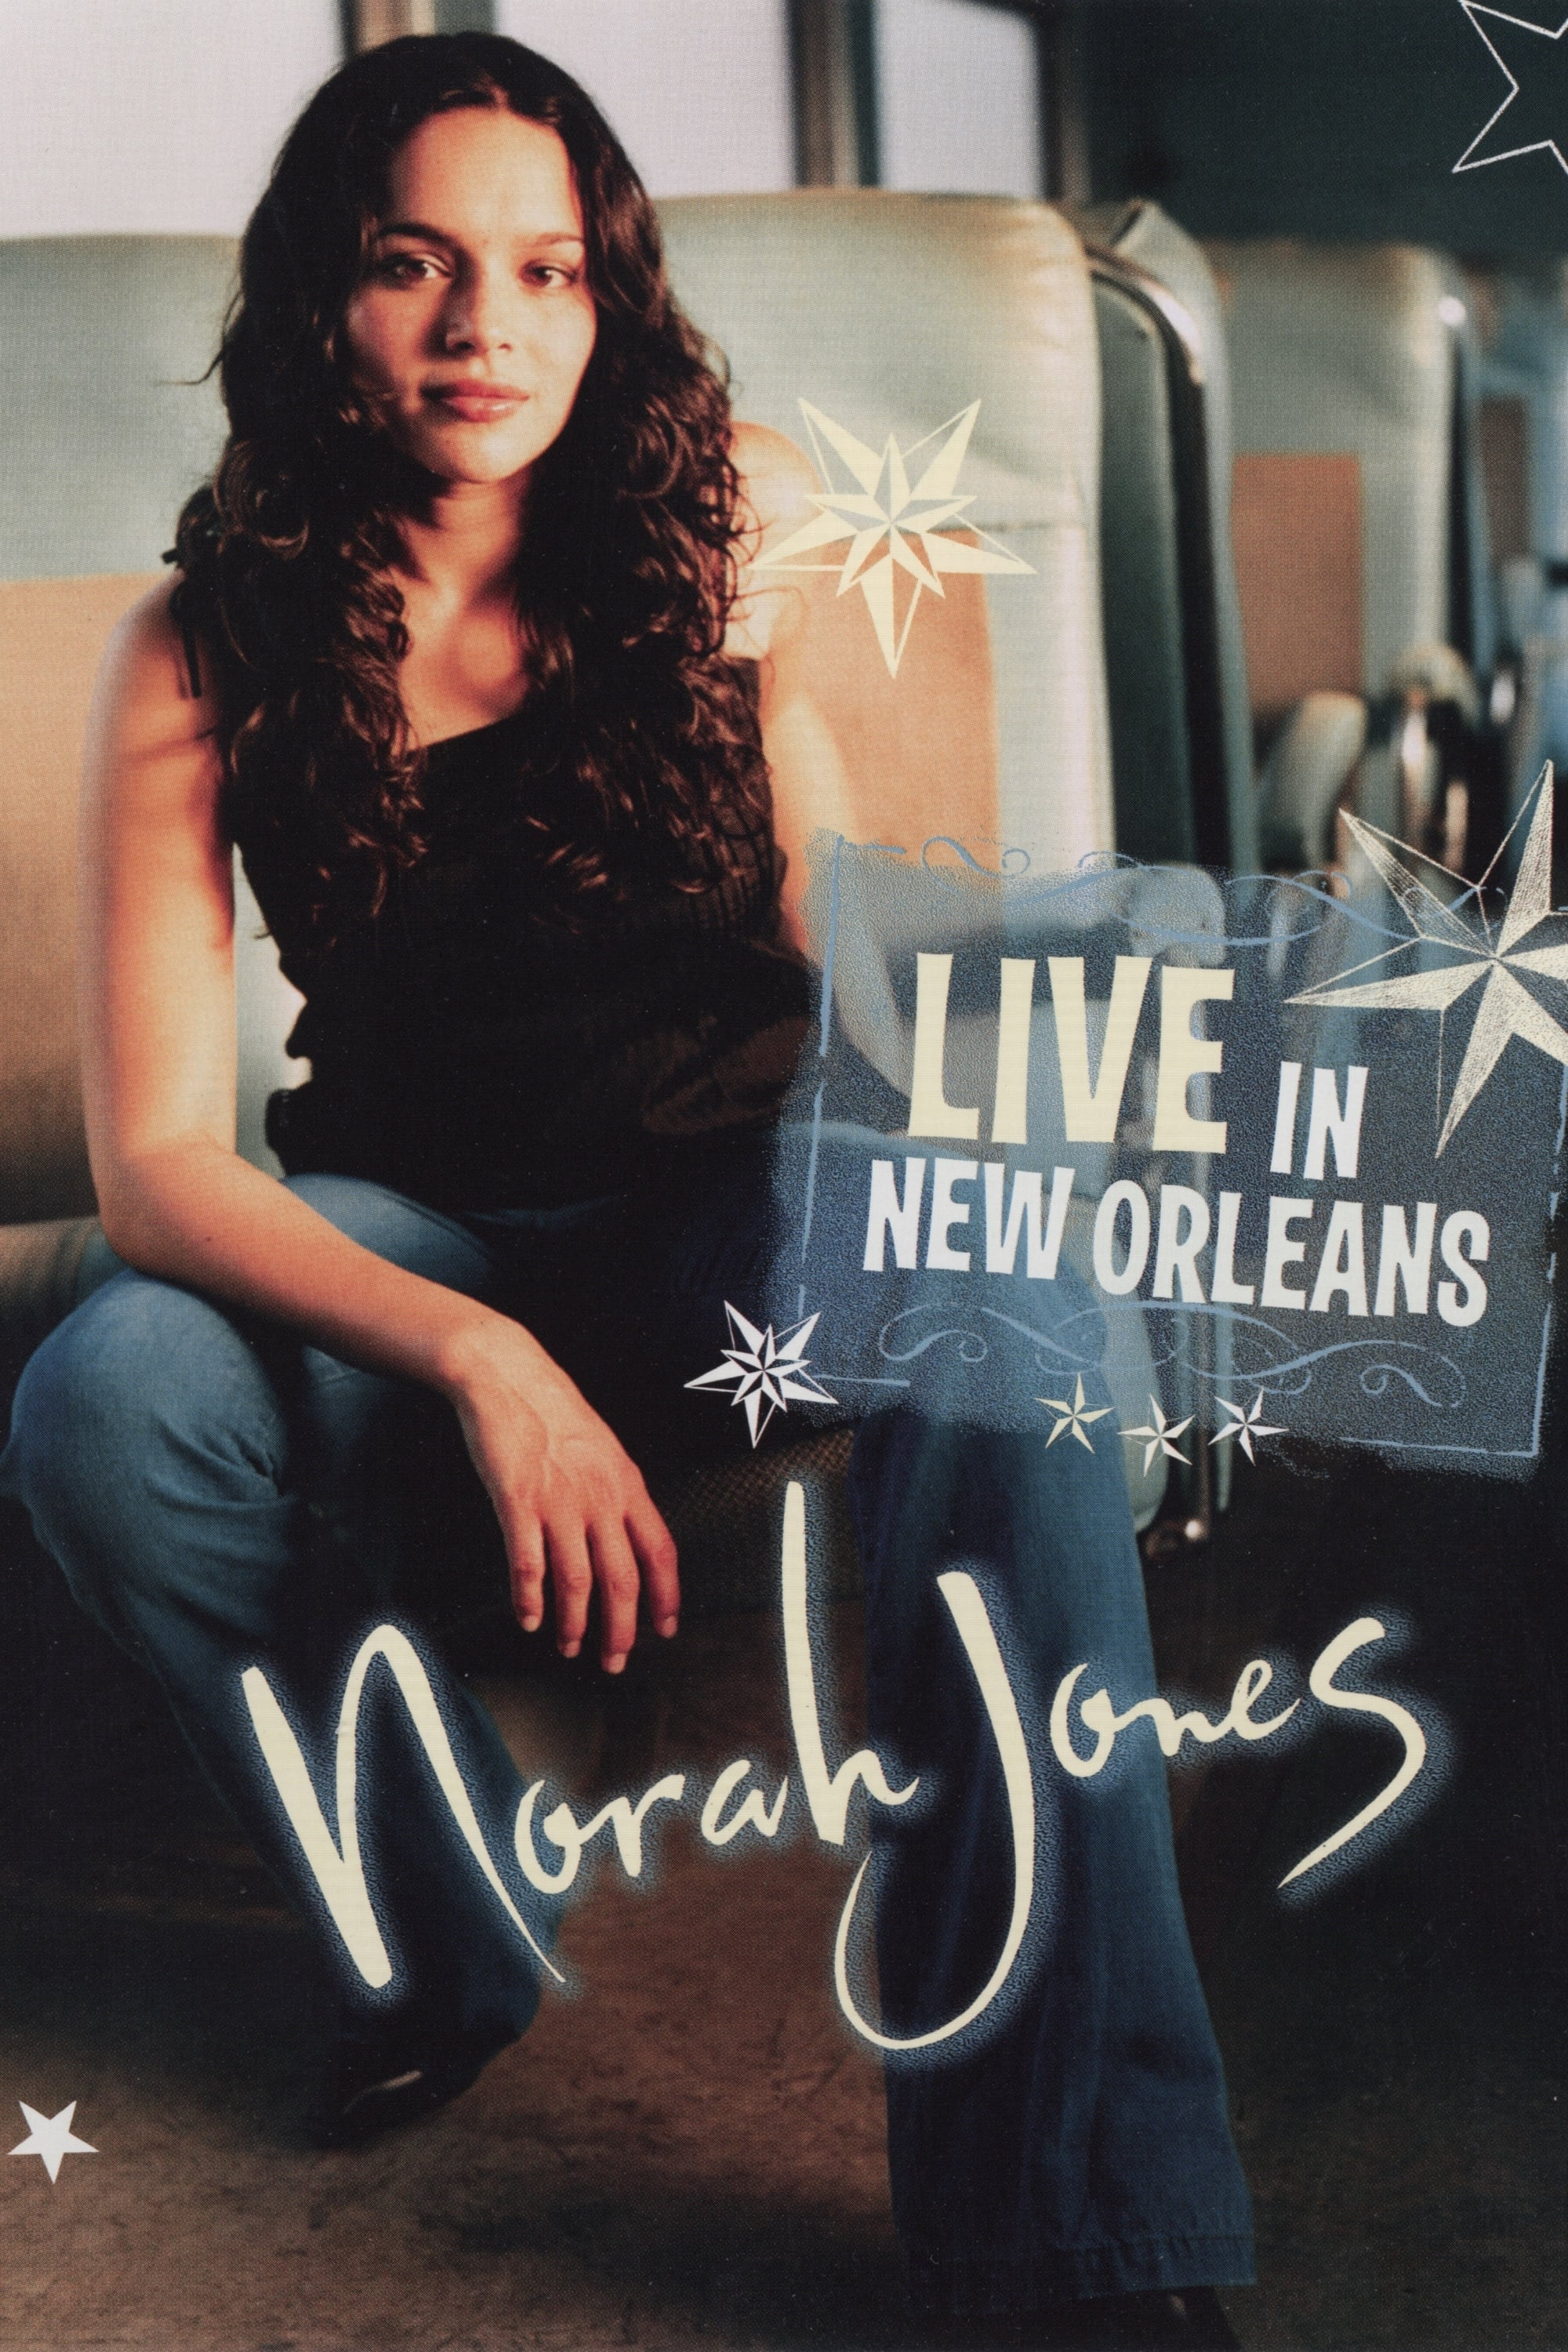 Norah Jones: Live in New Orleans (2003)